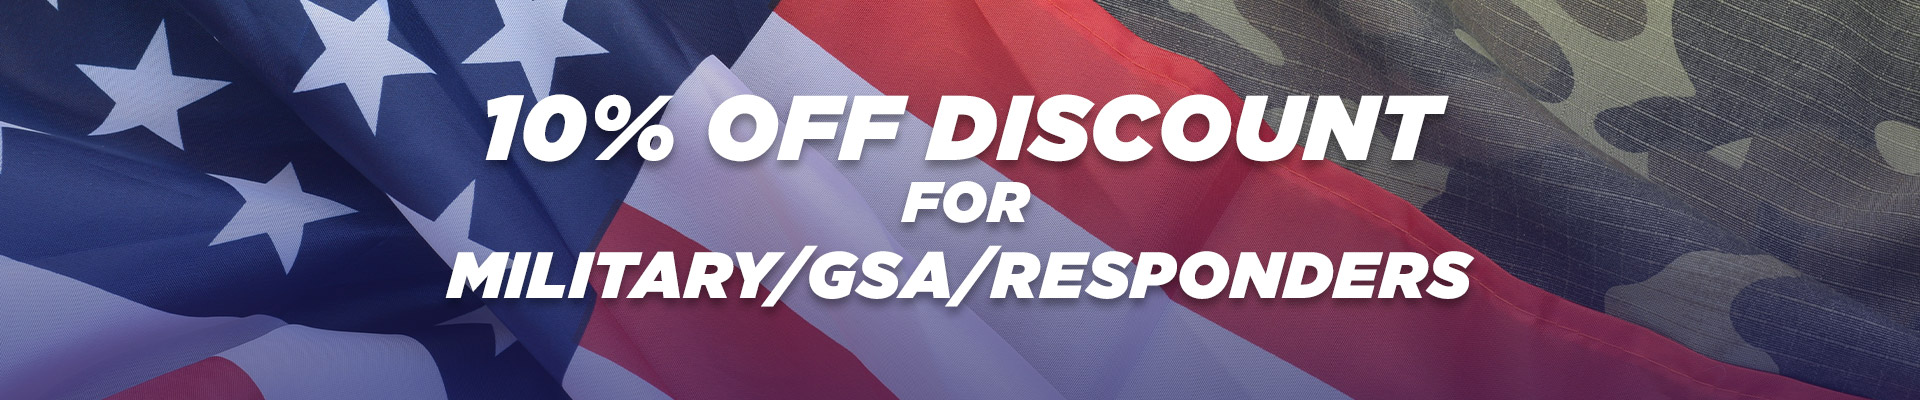 Military Discount Banner